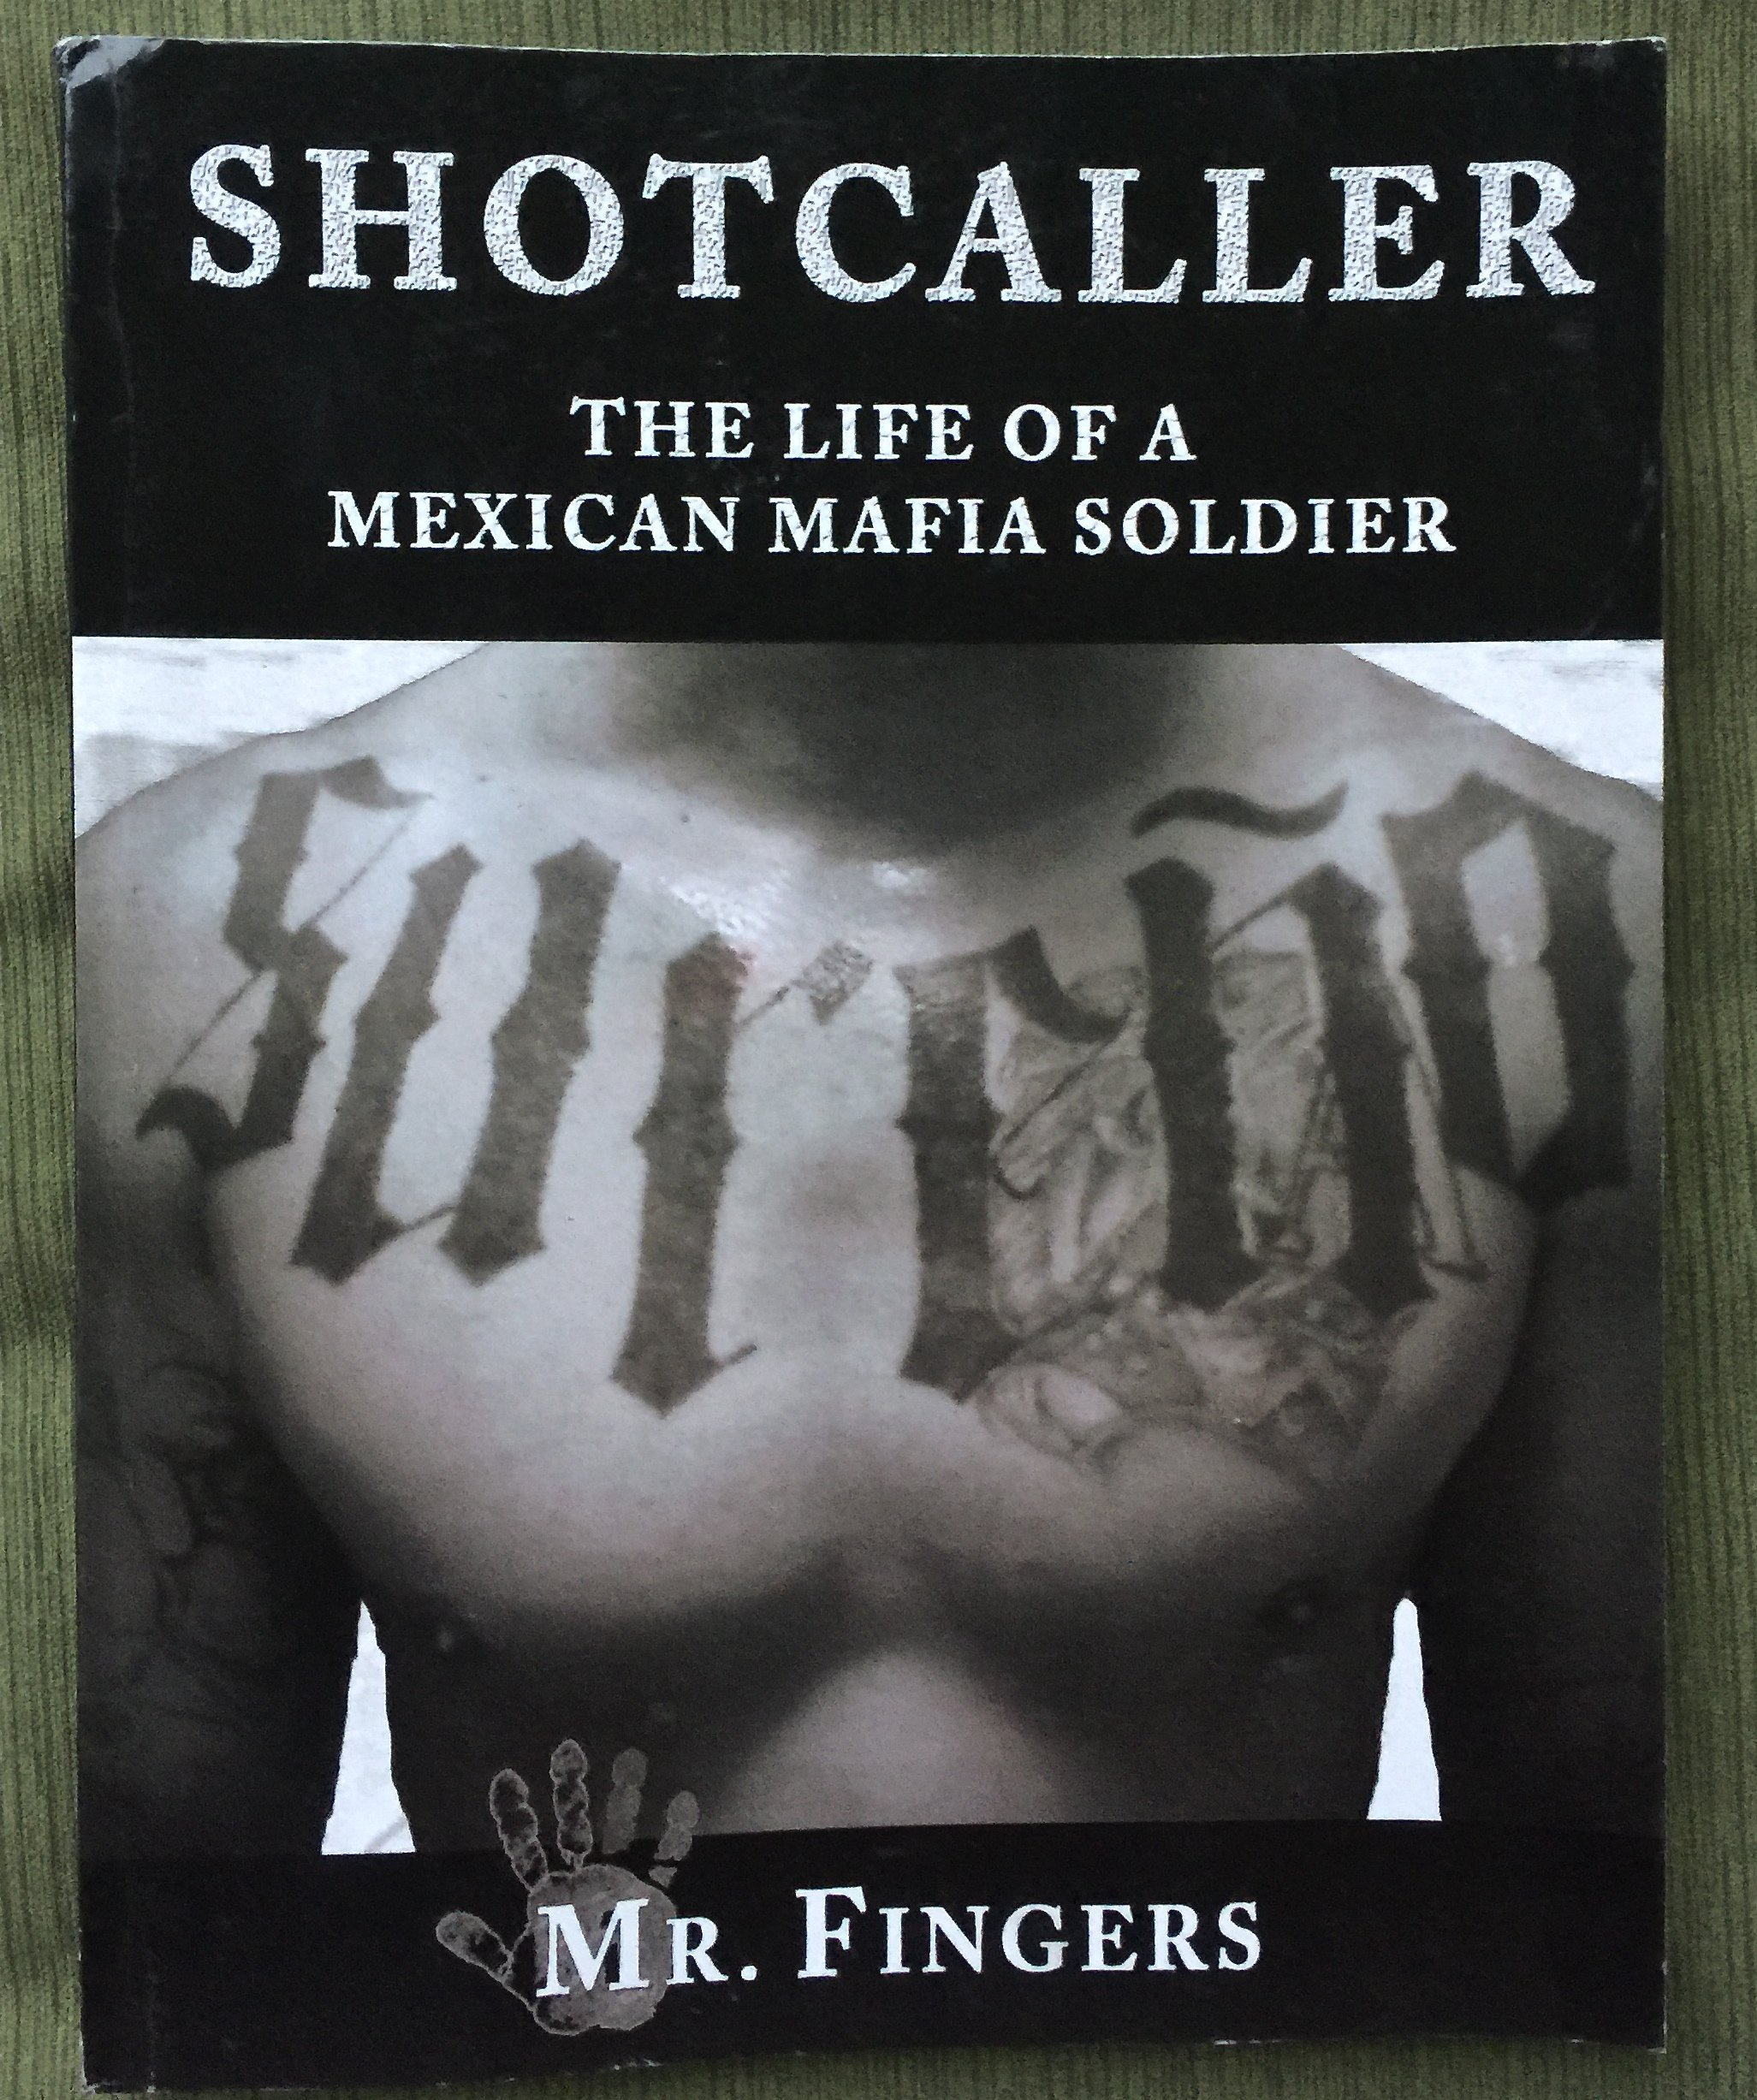 Shotcallers: The Life of a Mexican Mafia Soldier: Mr